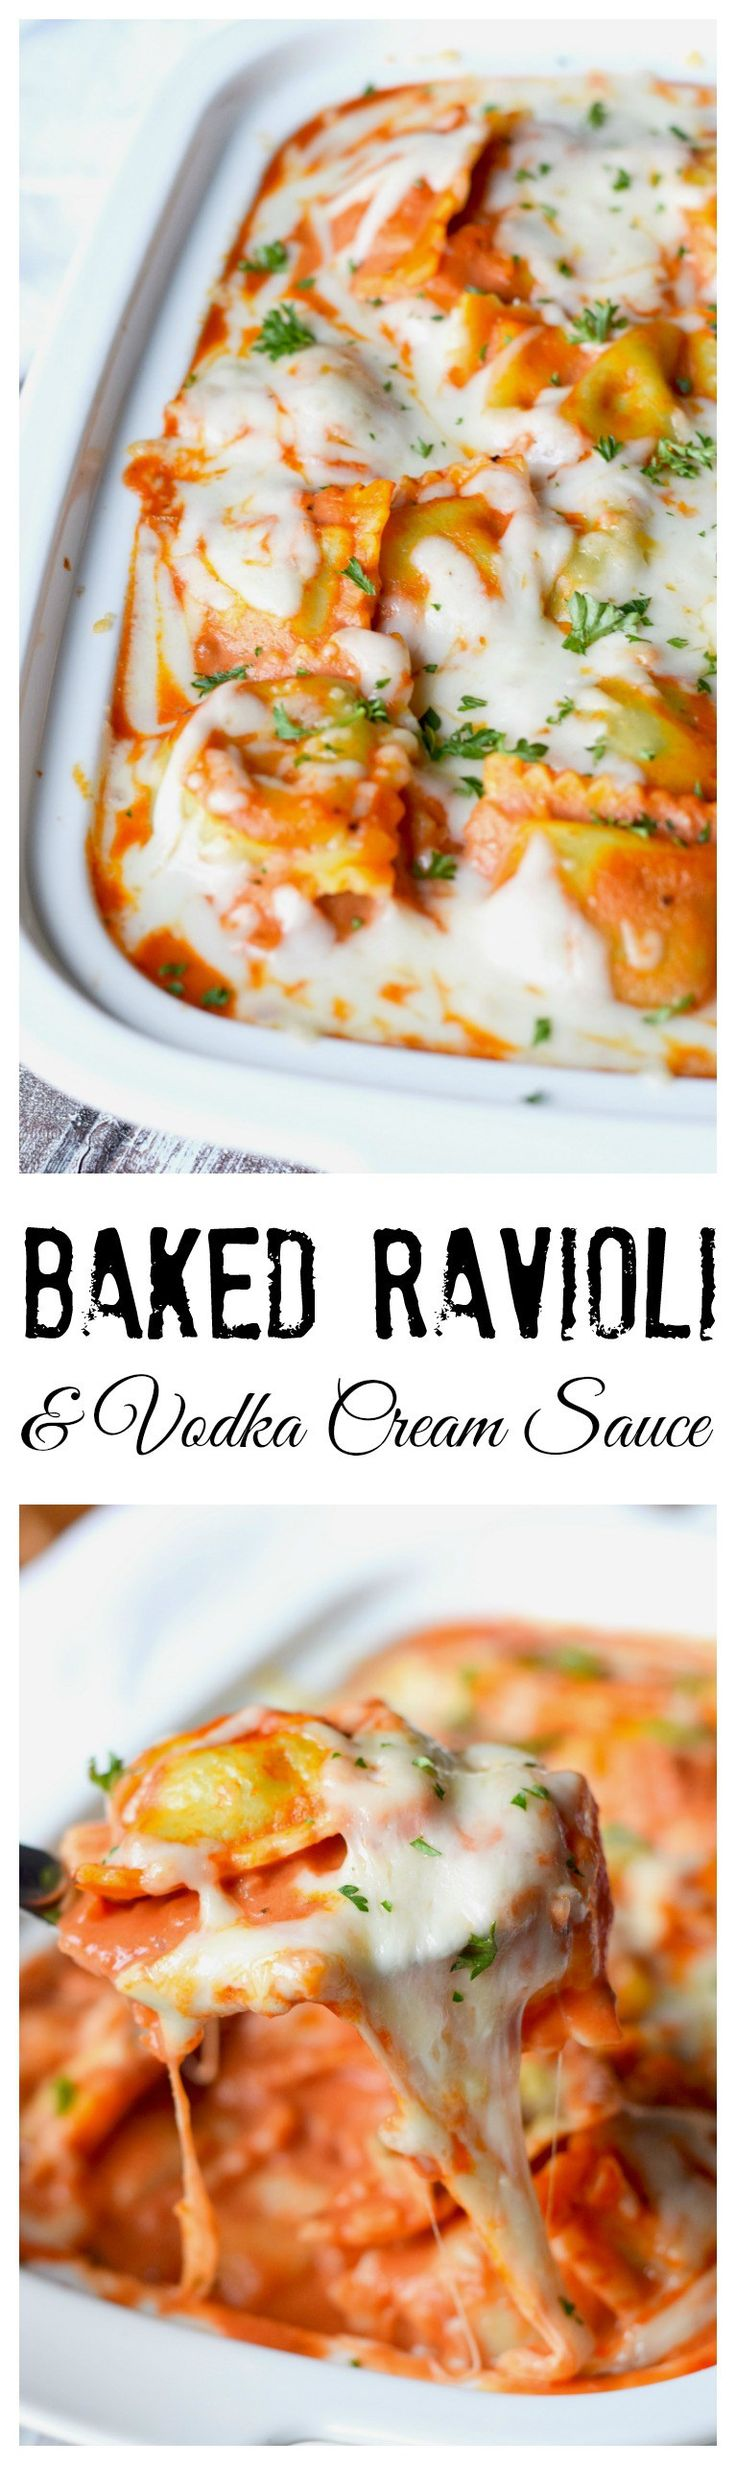 This baked ravioli & vodka cream sauce recipe is creamy and comforting. Everyone will devour it!